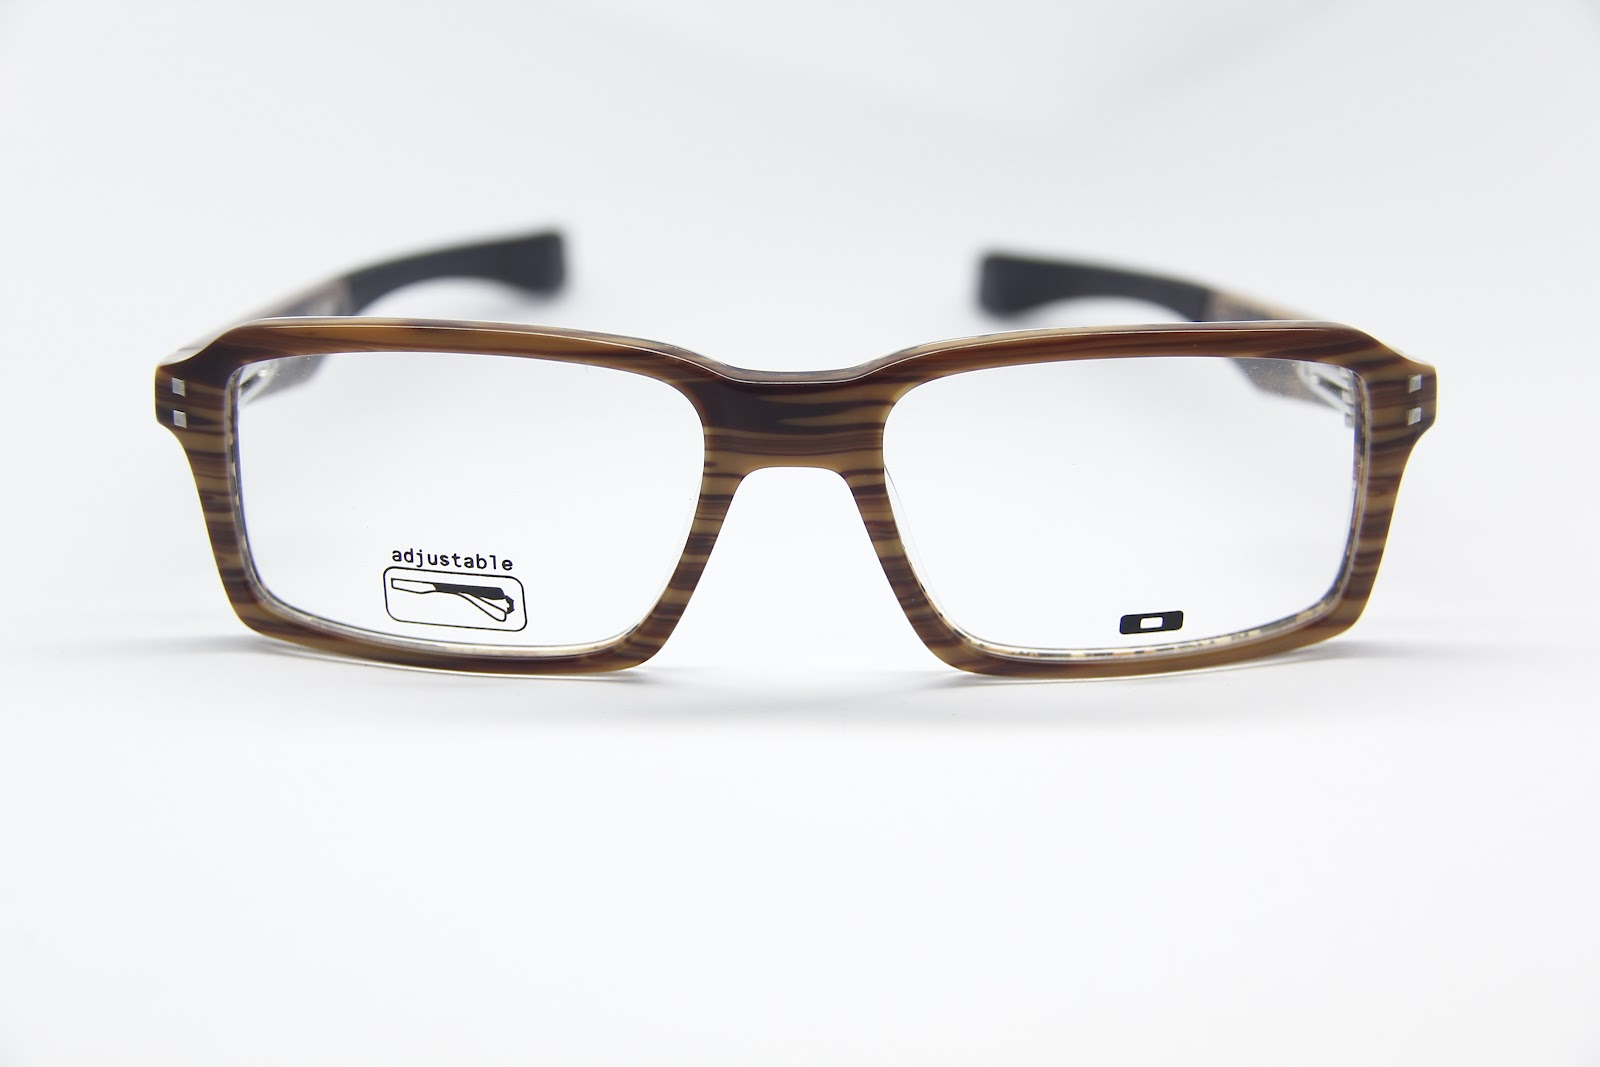 oakley prescription glasses singapore oakley fatcat